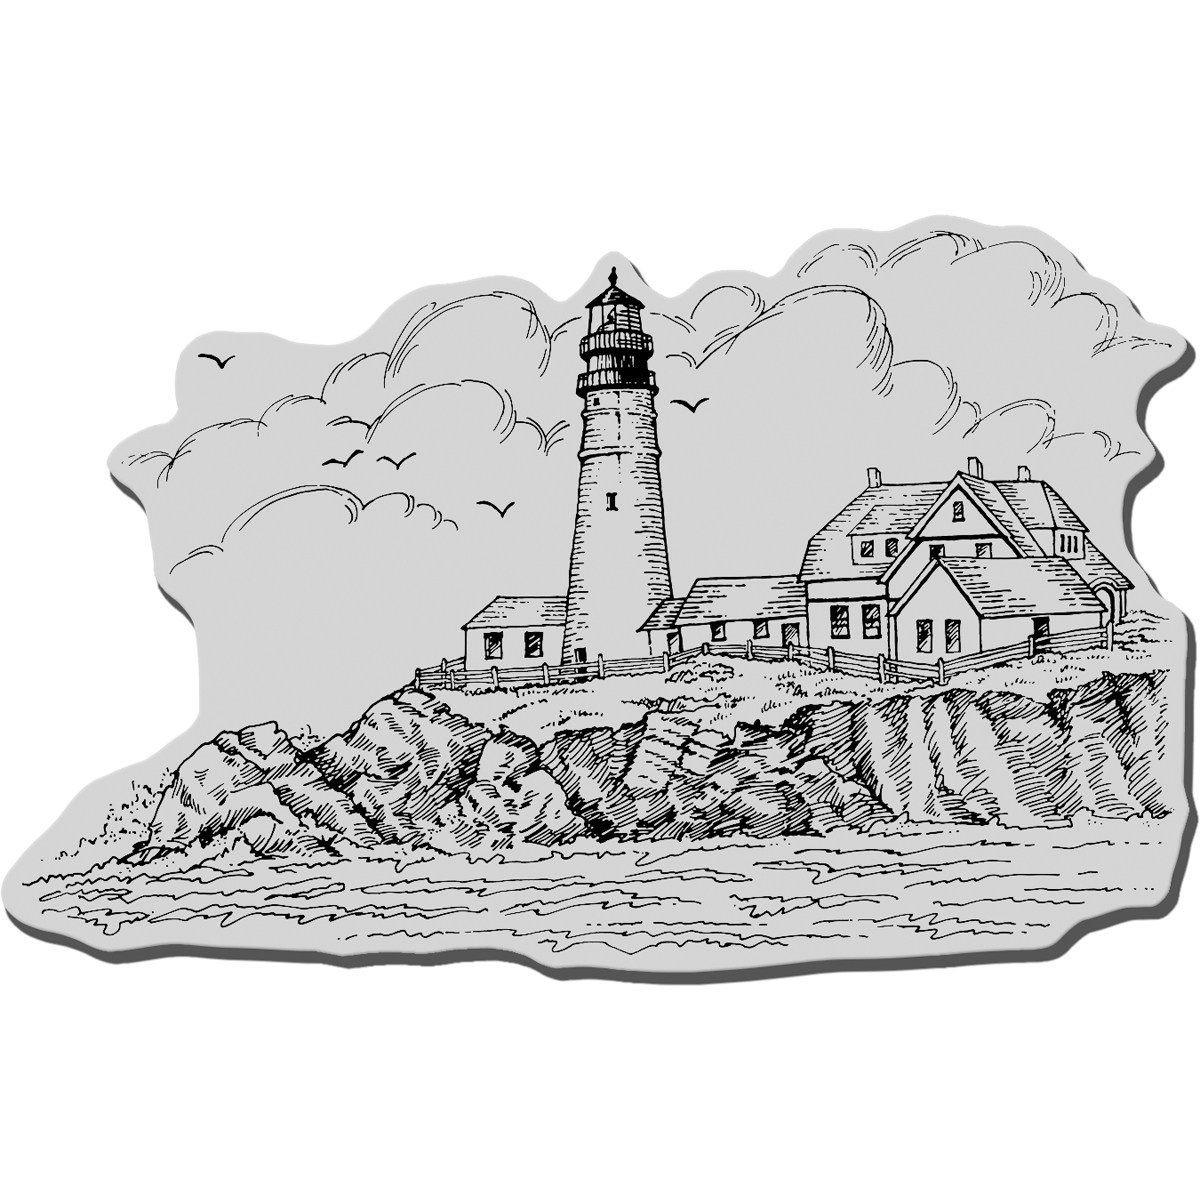 Prt Hd Lhs-cling Rubber Stamp